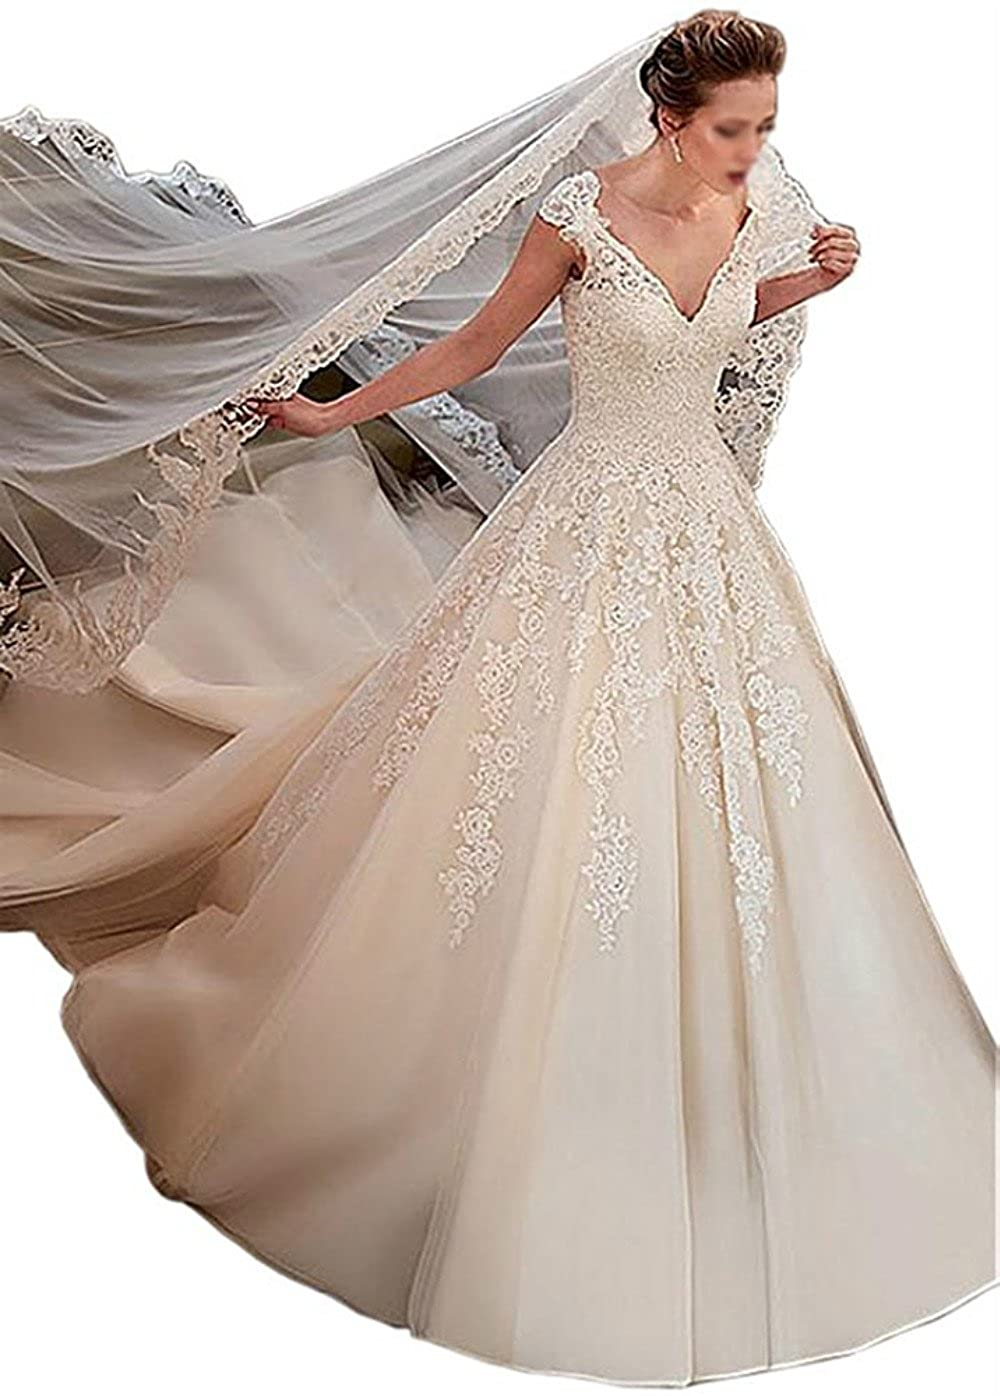 Vepycly Elegant Cap Sleeve V Neck Lace Appliques Ball Gown Wedding